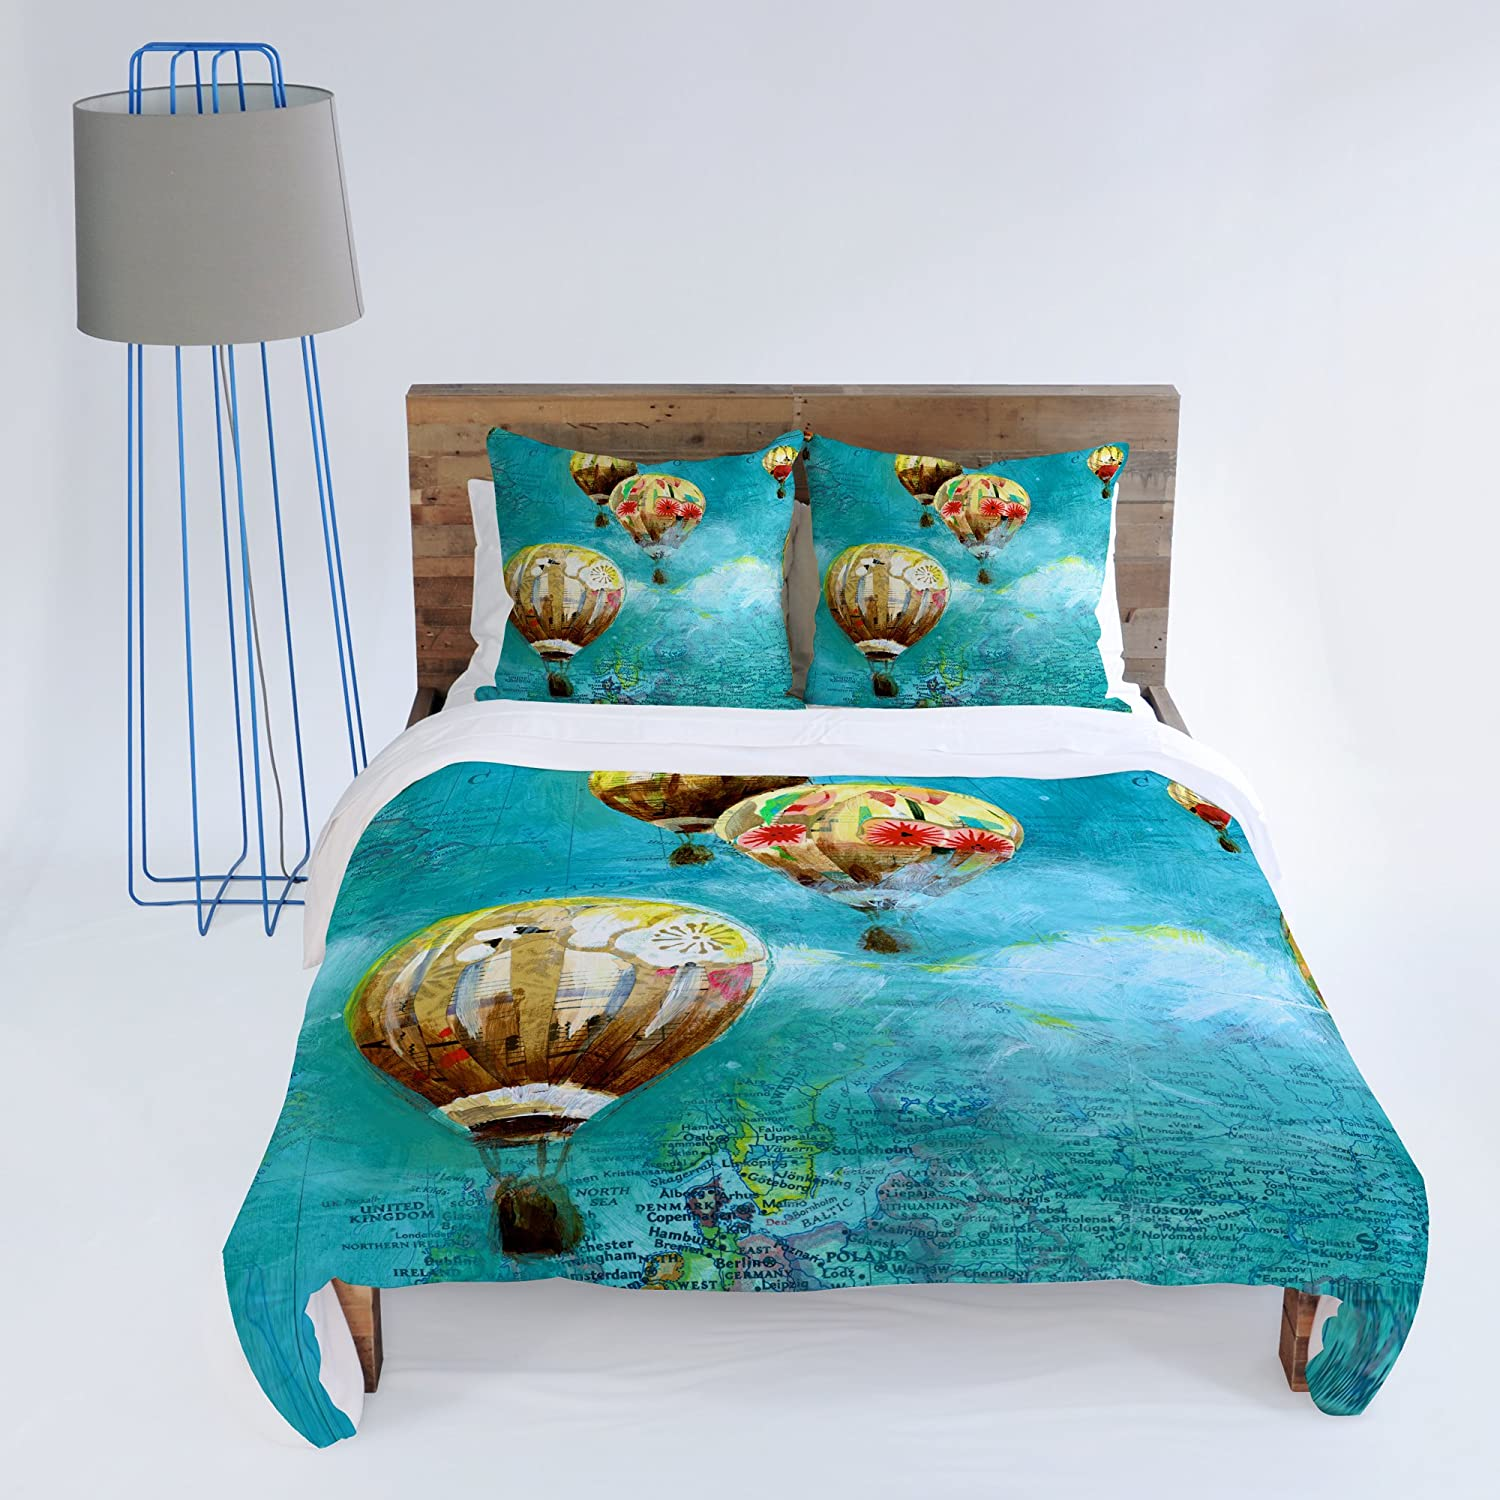 Hot Air Balloon Bedding Totally Kids Totally Bedrooms